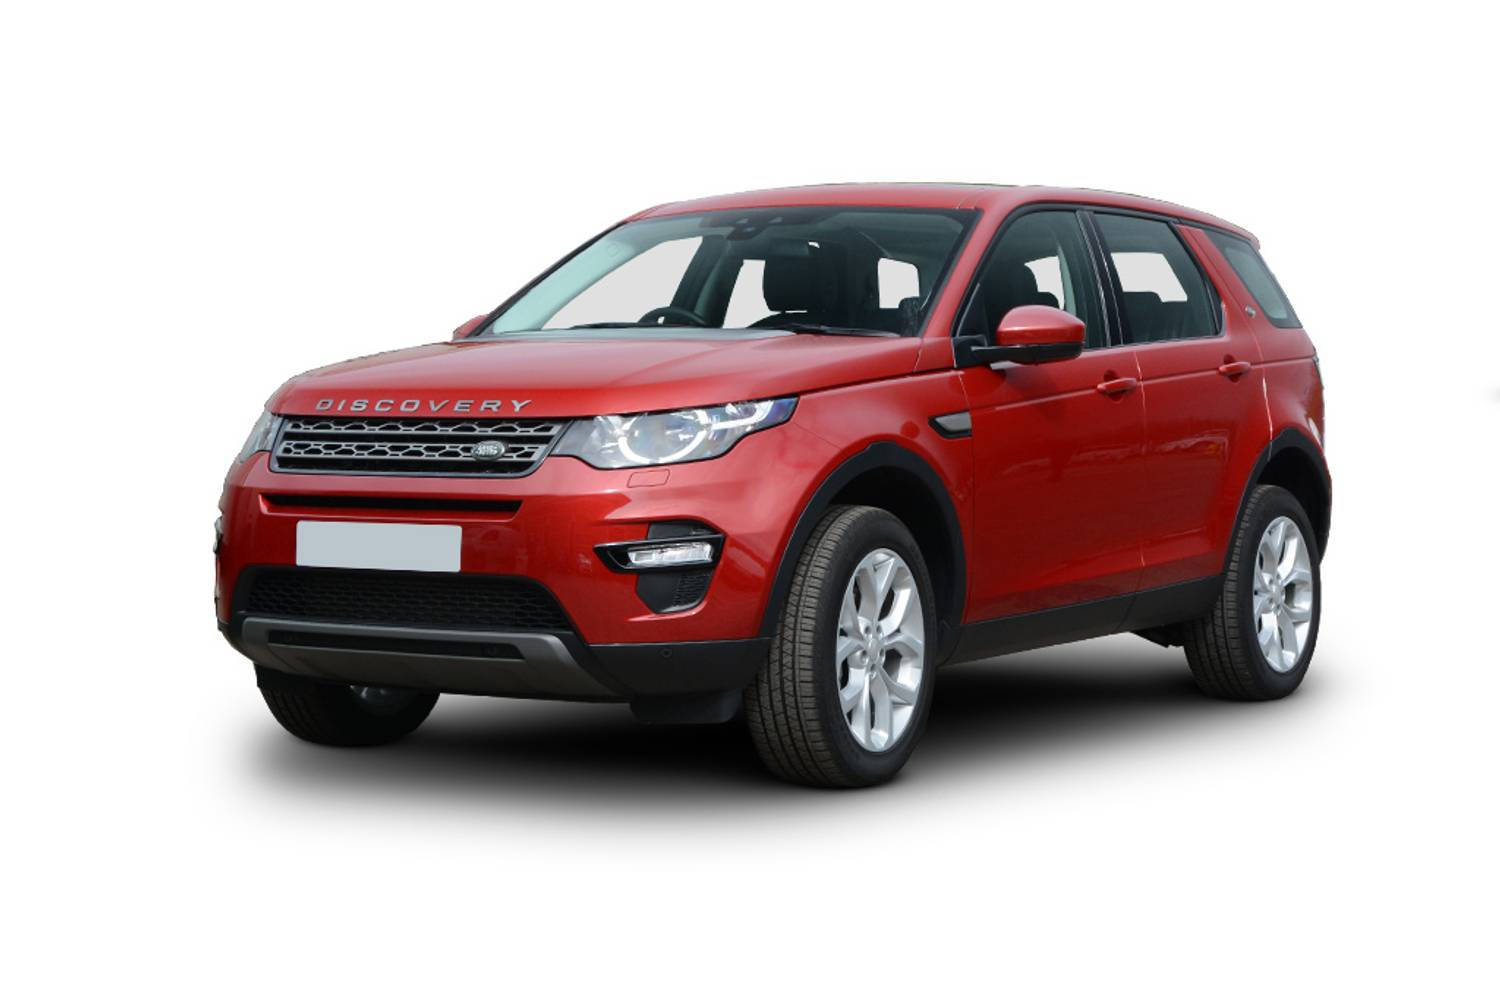 new land rover discovery sport diesel sw 2 0 td4 180 ps se 5 door auto 2015 for sale. Black Bedroom Furniture Sets. Home Design Ideas